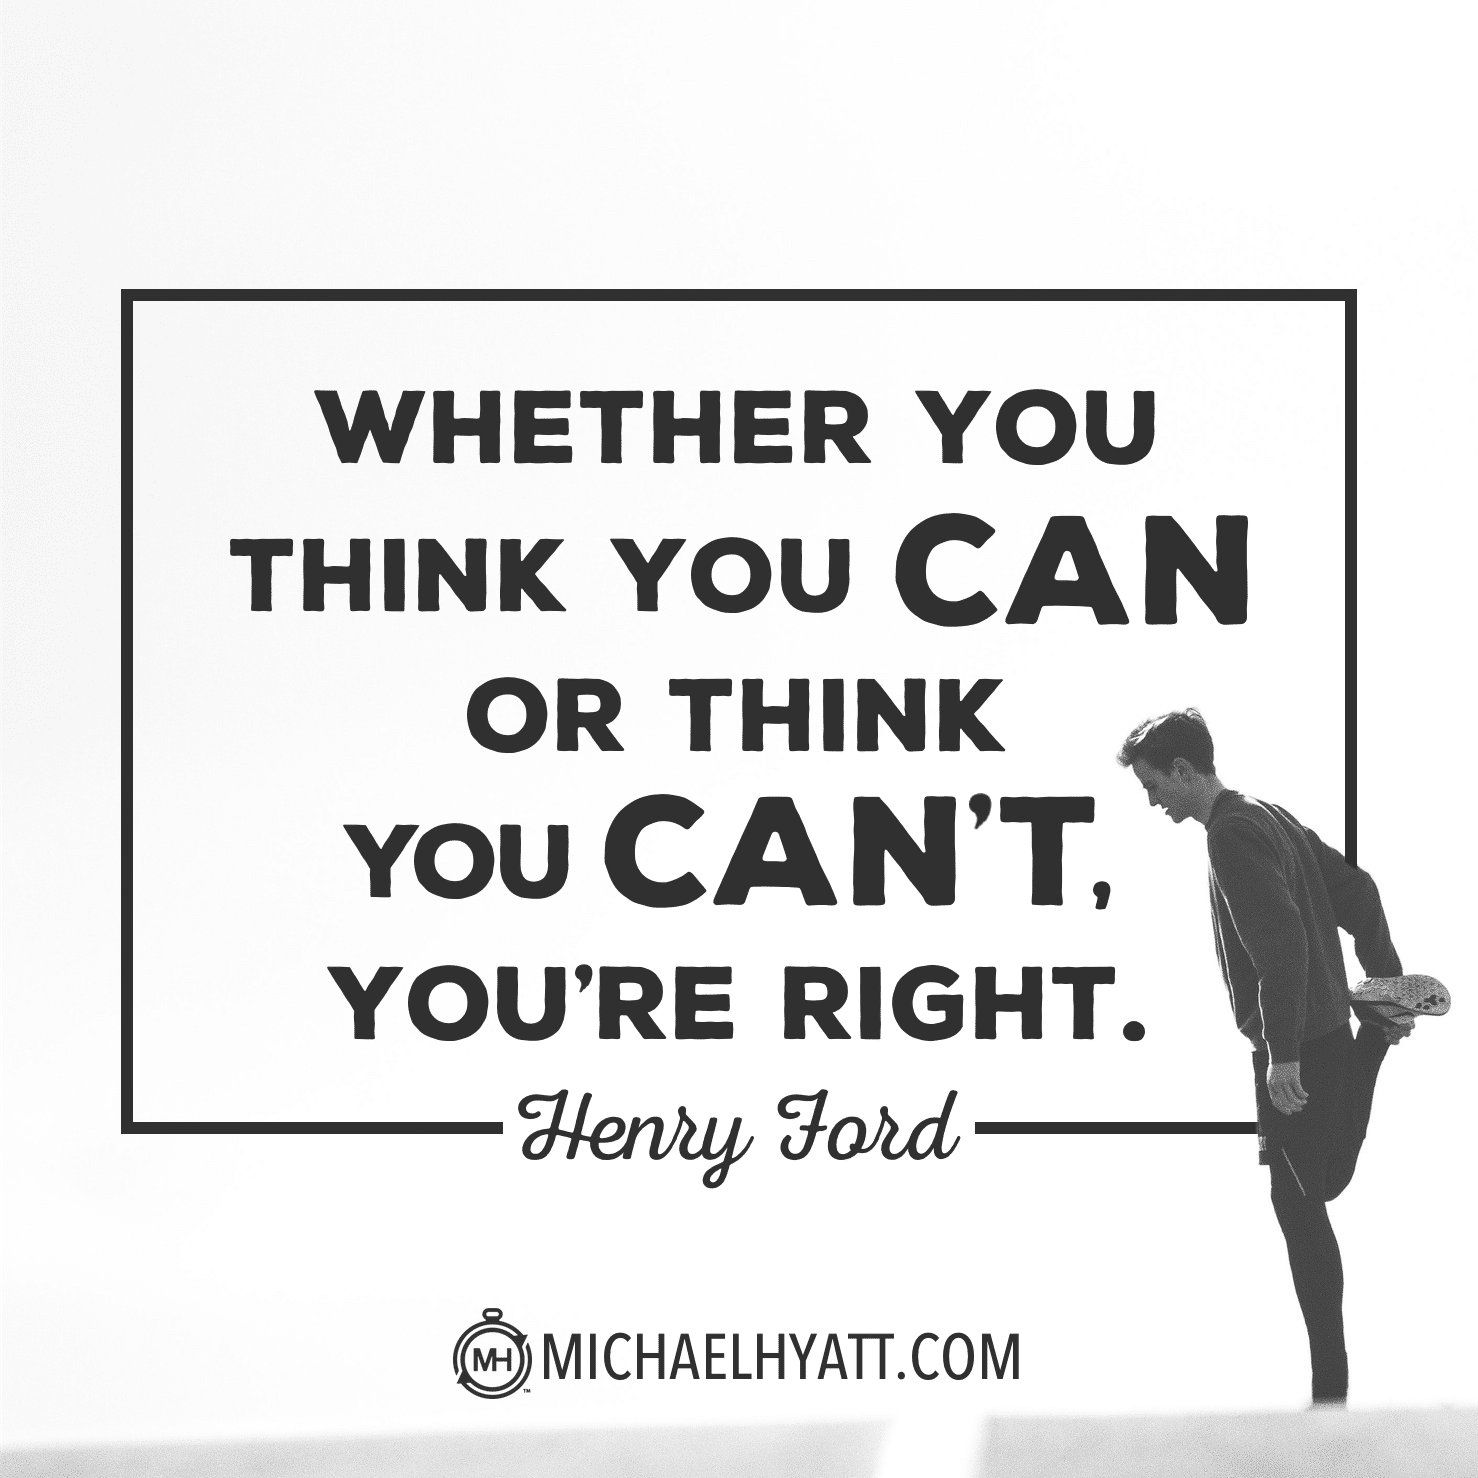 Quote Whether You Think You Can: Shareable Images